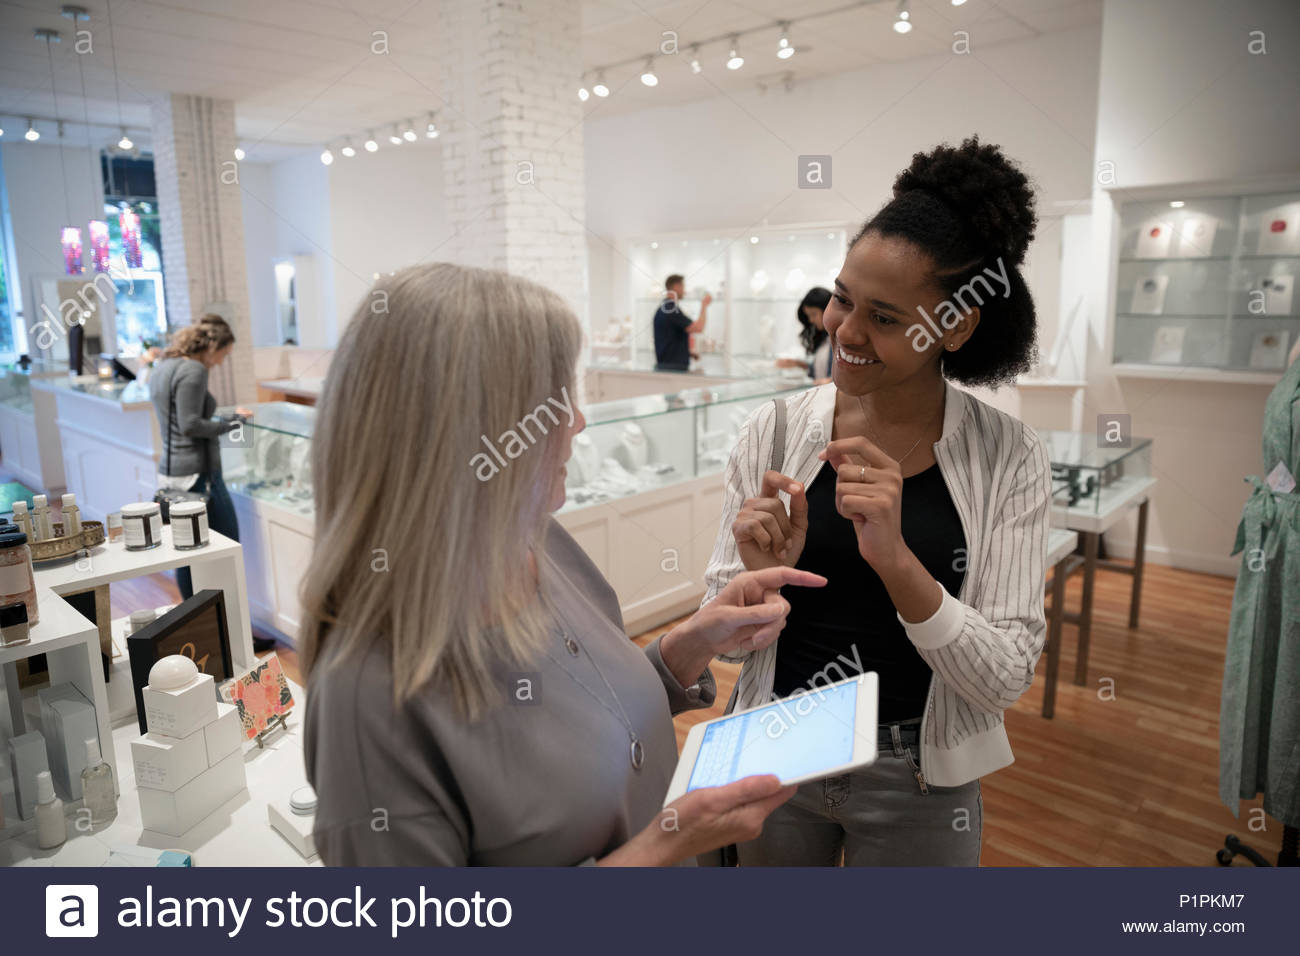 Boutique owner with digital tablet helping woman shopping - Stock Image